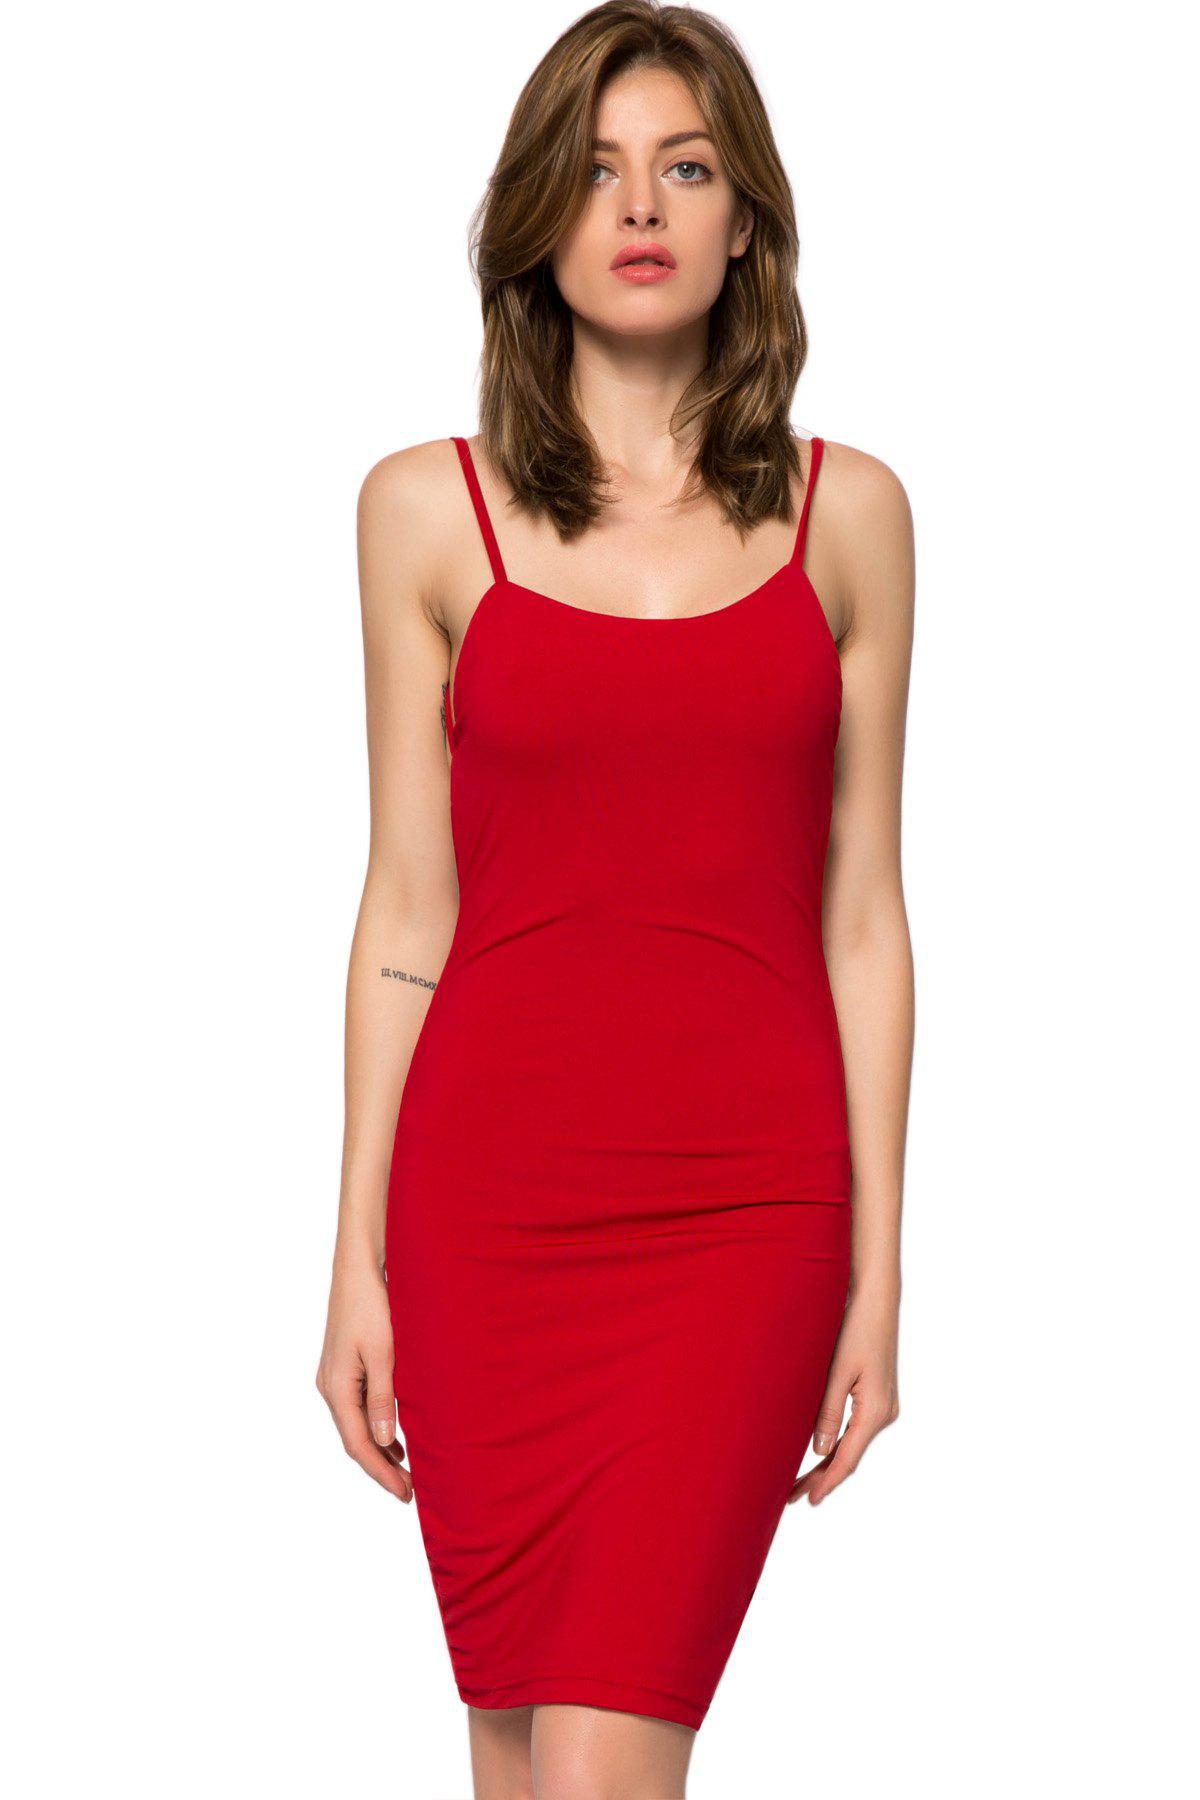 Sexy Style Spaghetti Straps Solid Color Backless Women's Bodycon Dress - RED L